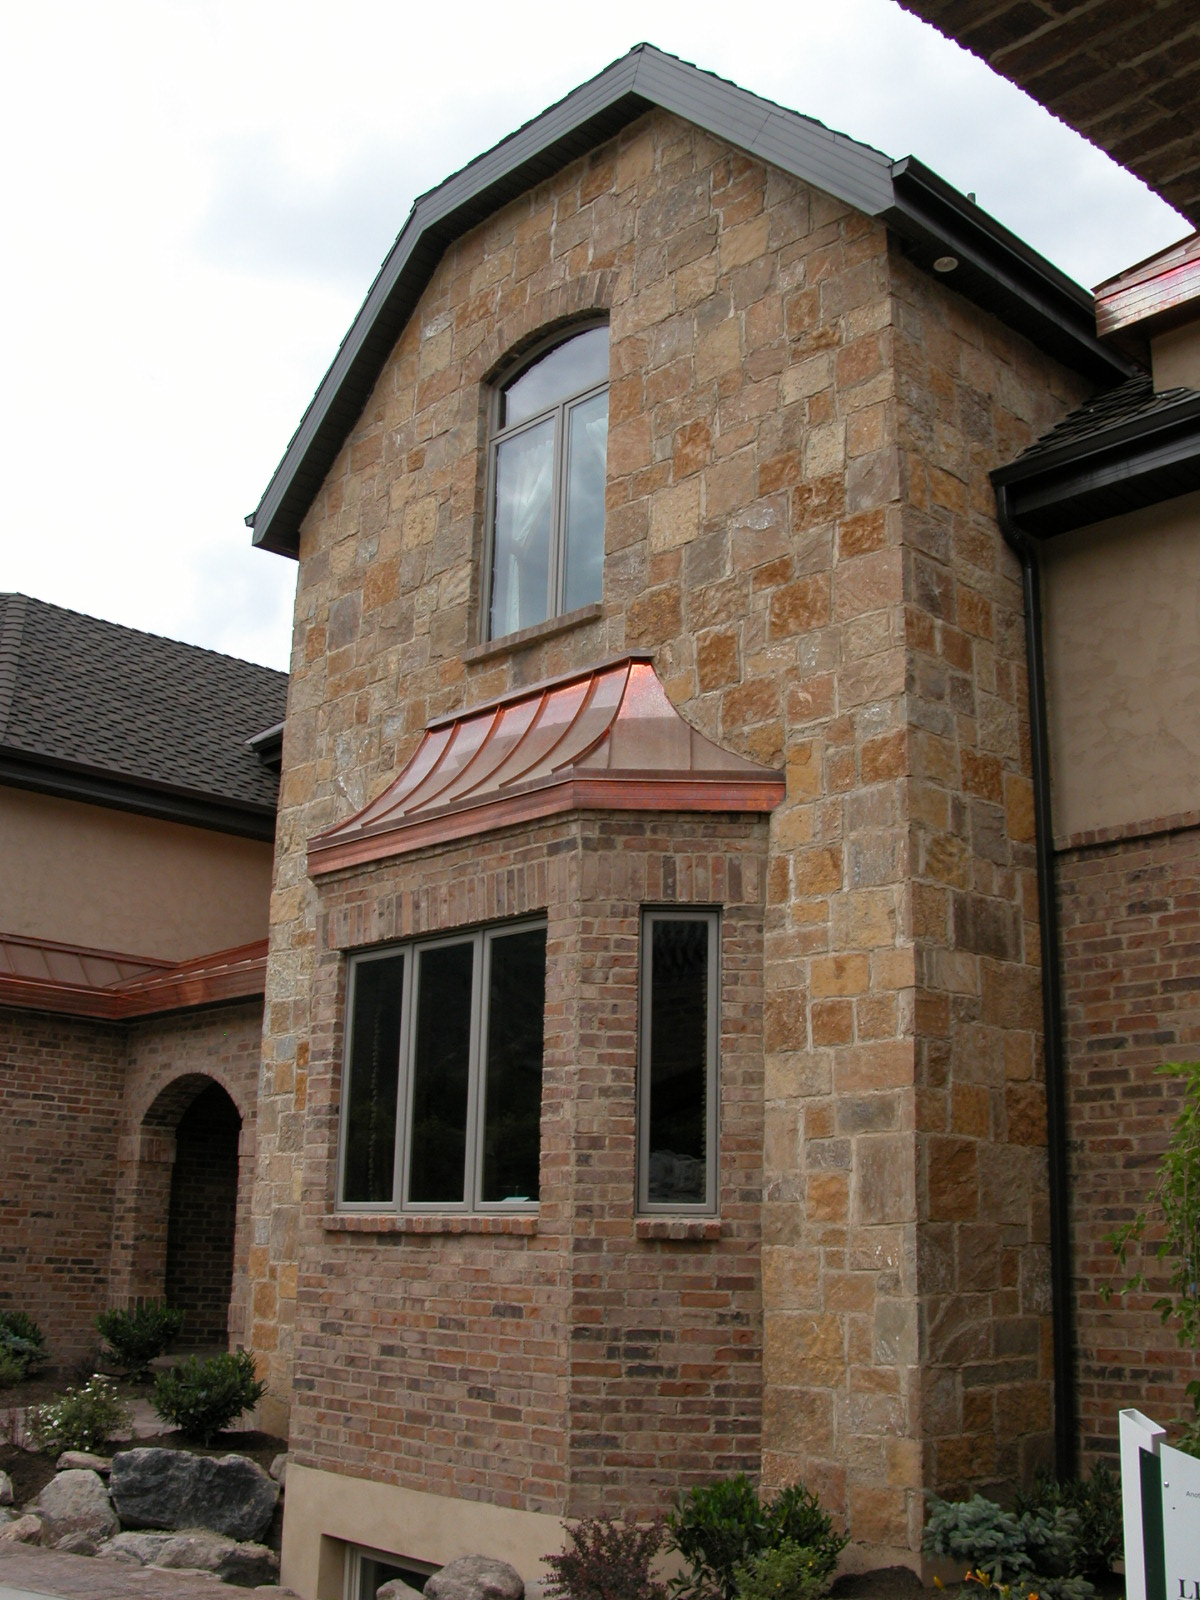 Business  Life Stone  Brick Combinations